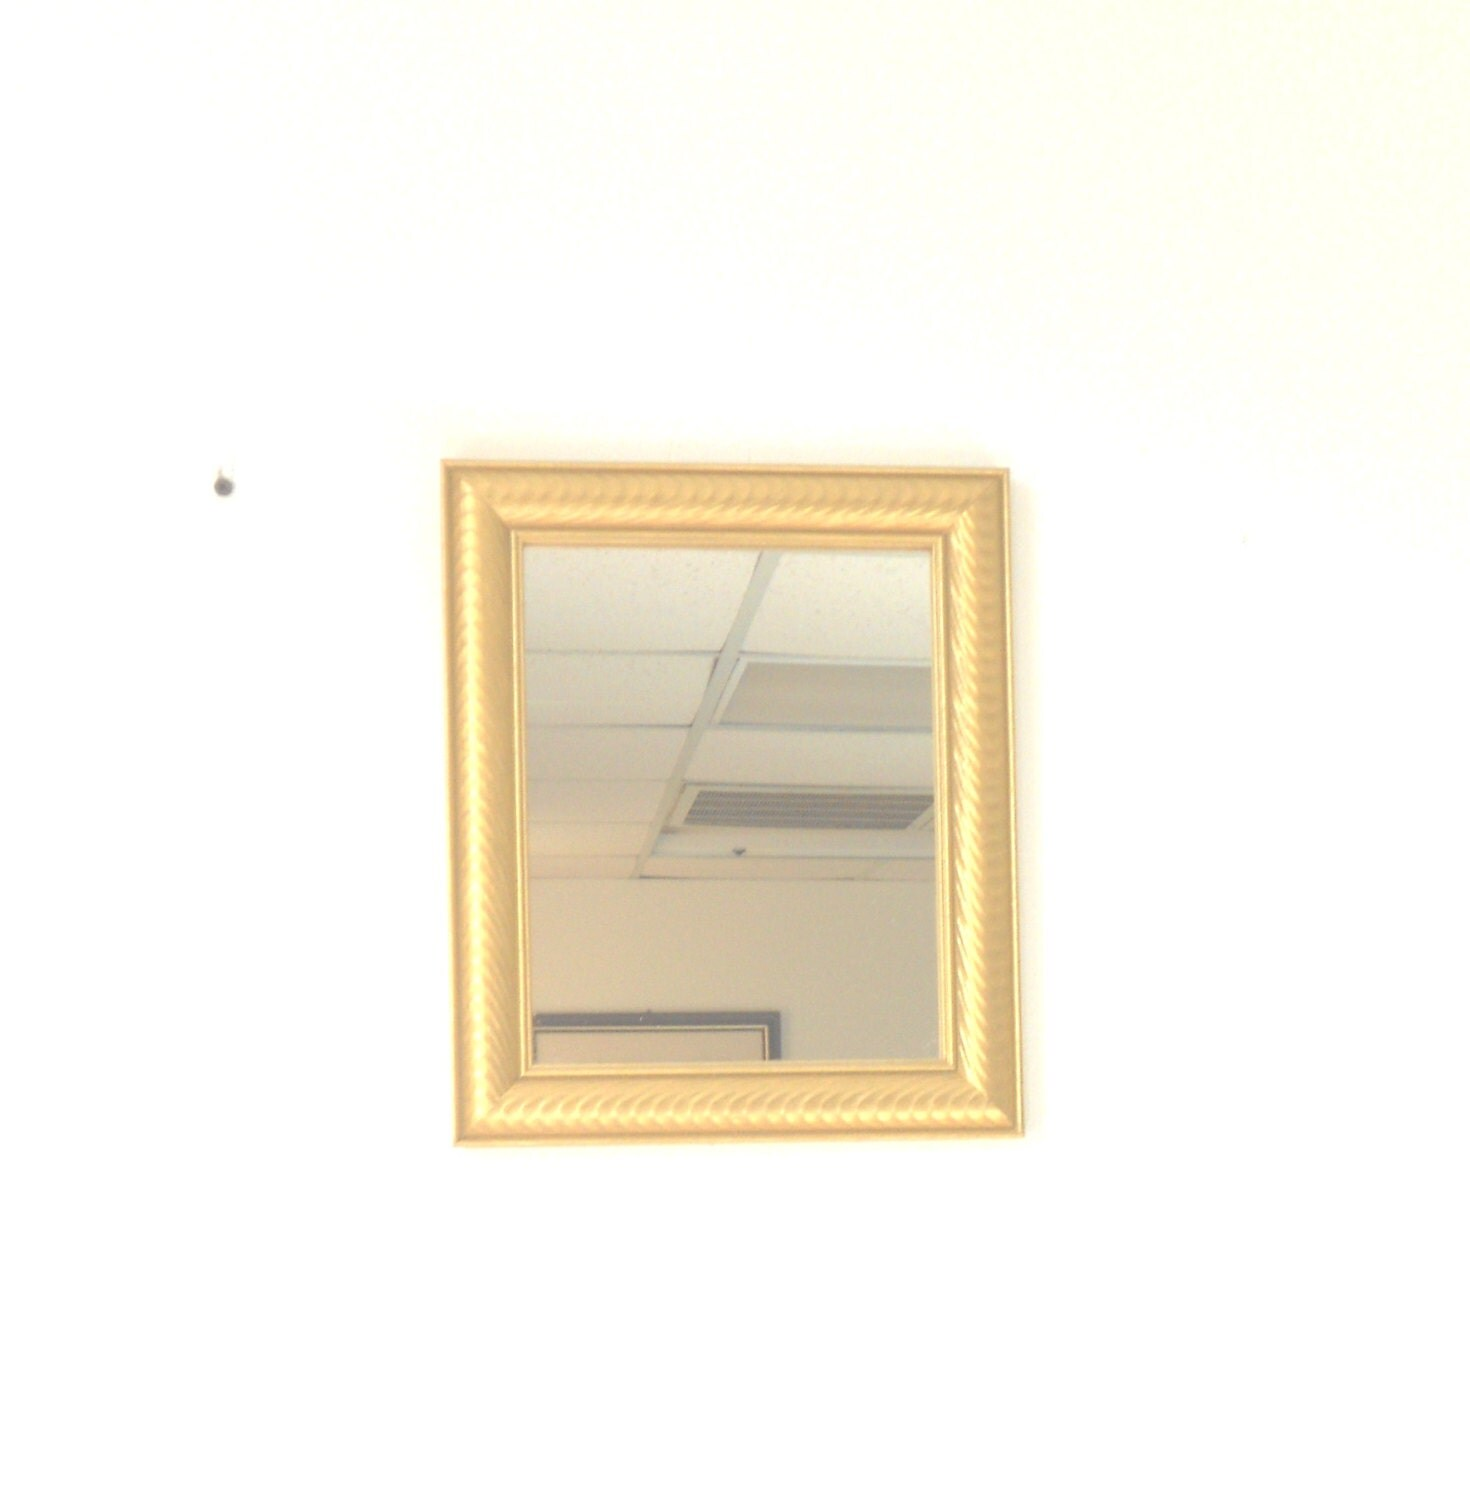 Popular items for small gold mirrors on etsy for Small gold framed mirrors